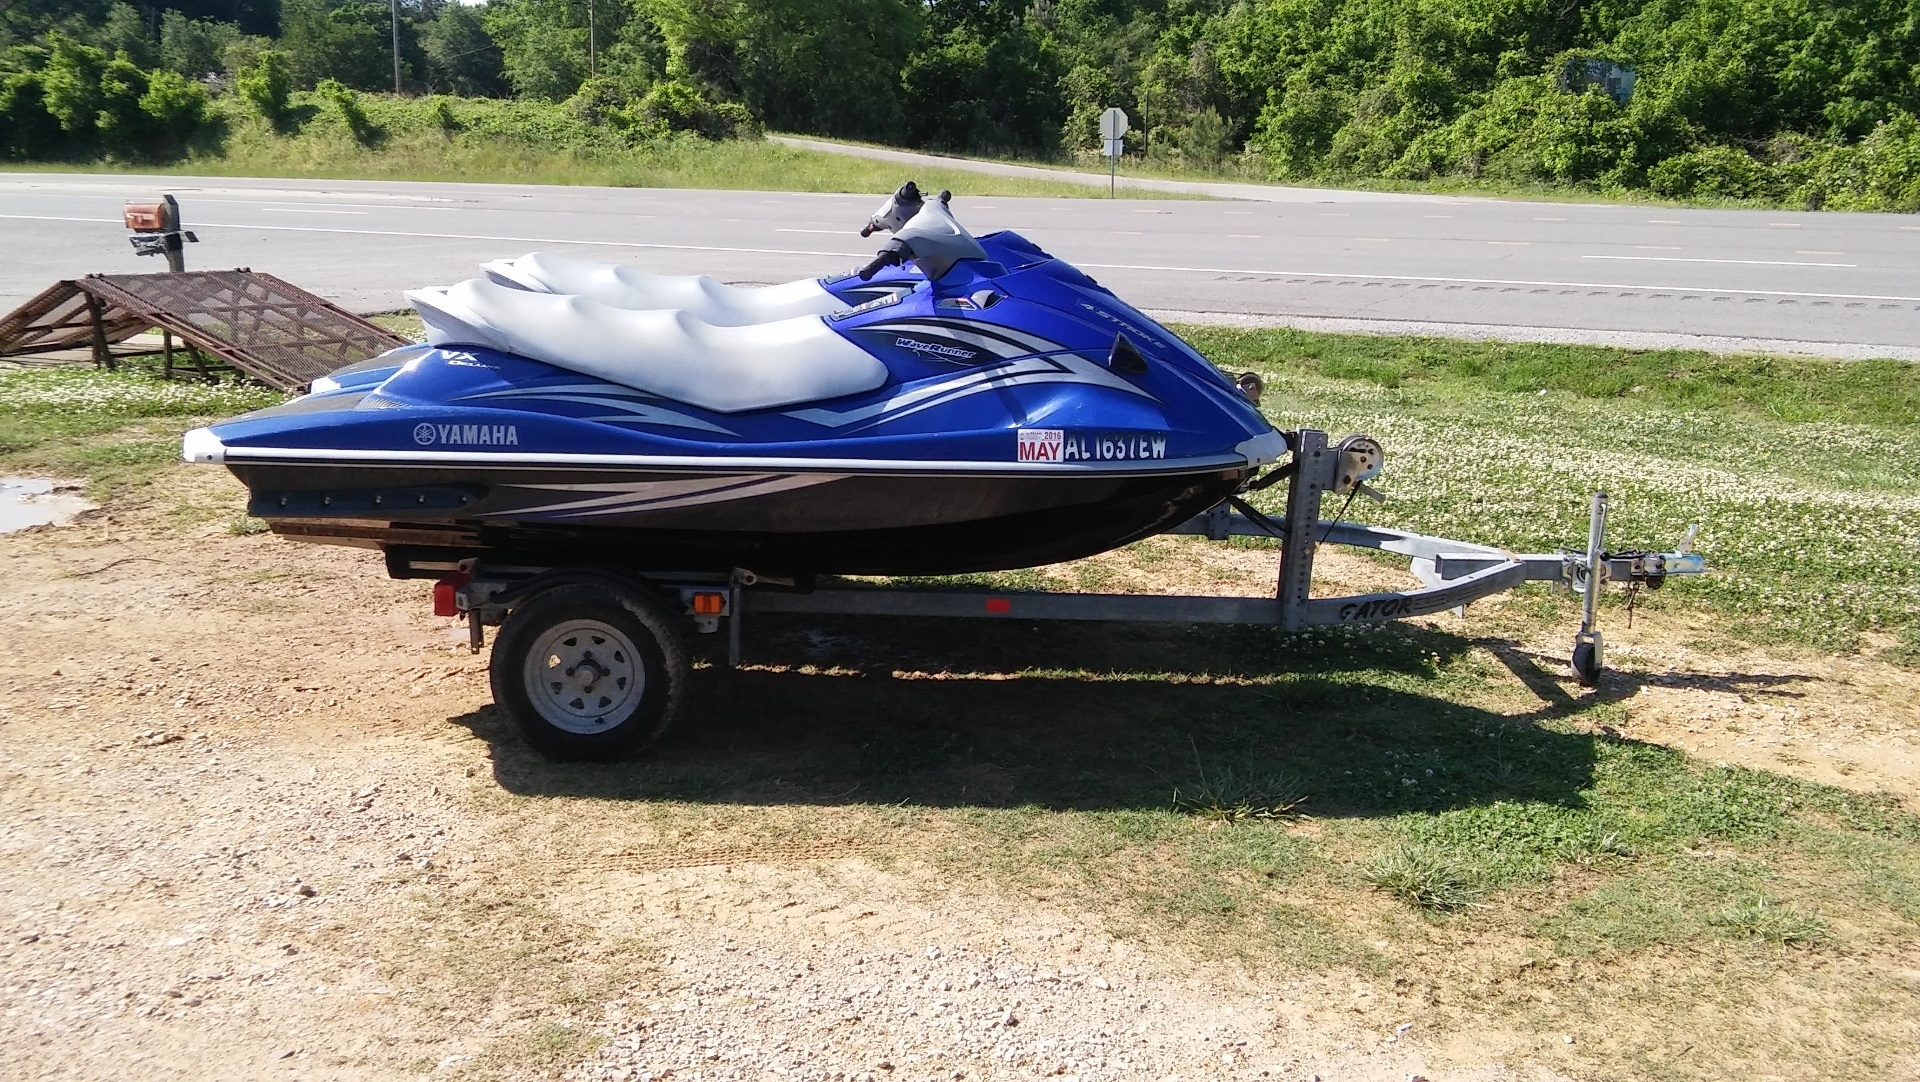 2008 Yamaha VX Deluxe for sale 57357